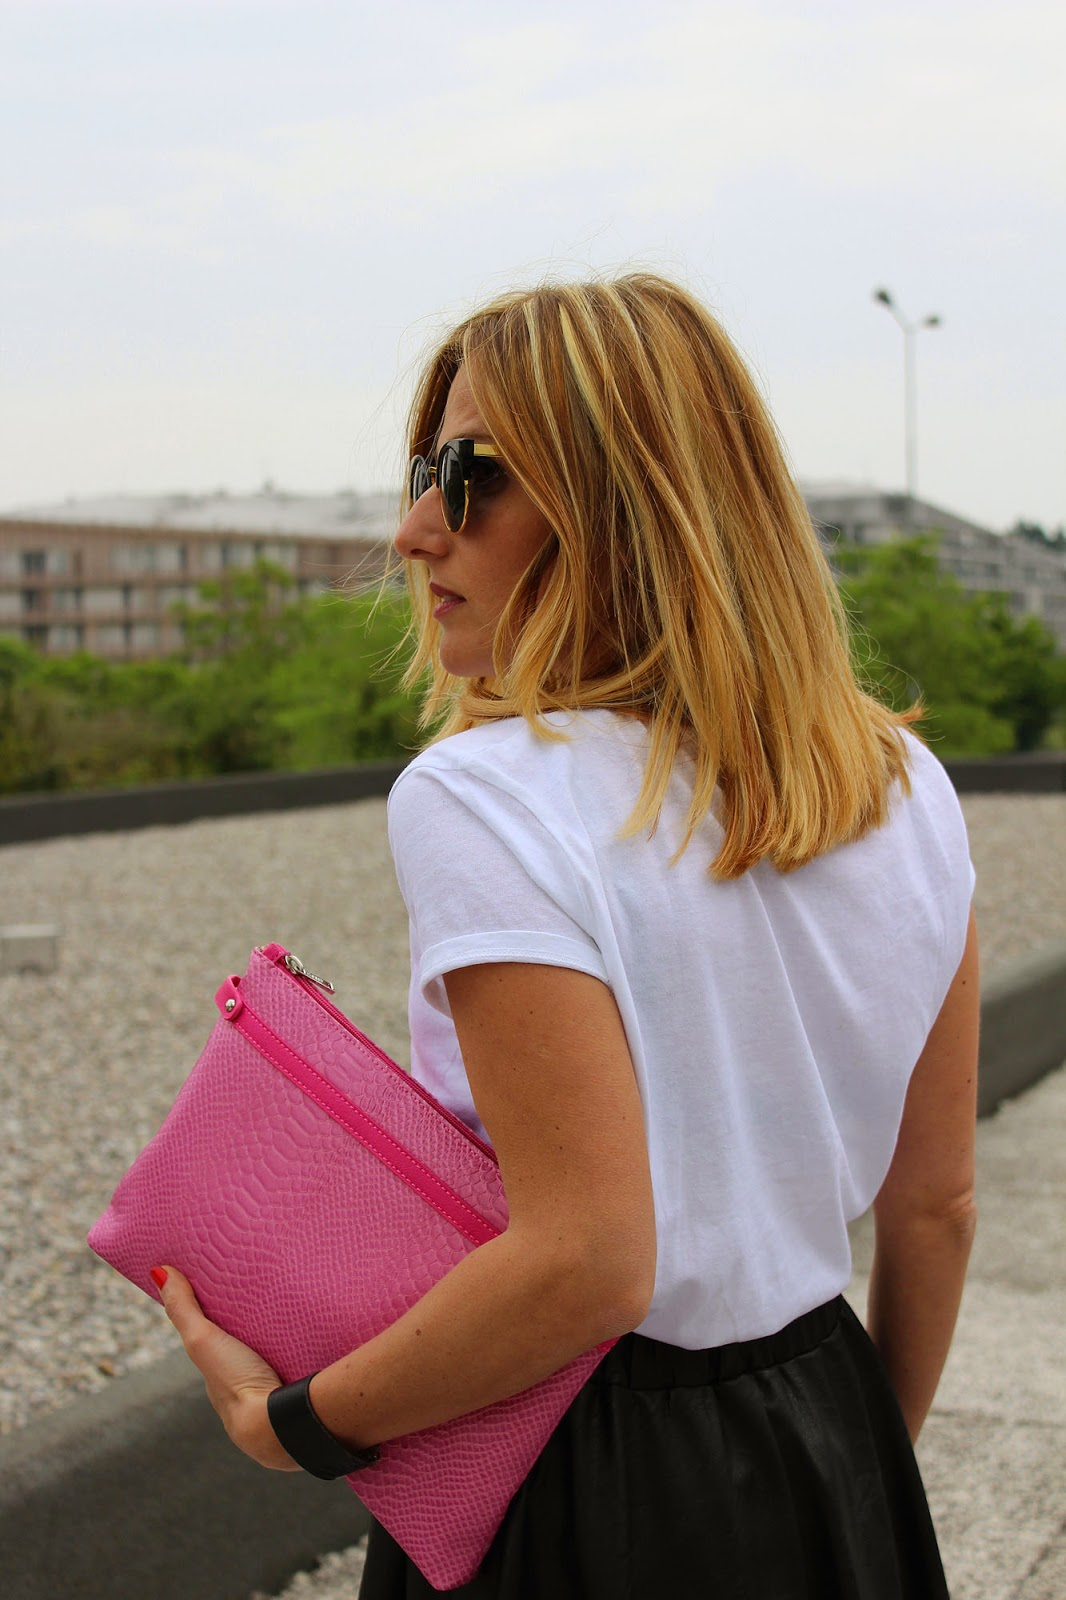 Eniwhere Fashion - pink Caleidos bag